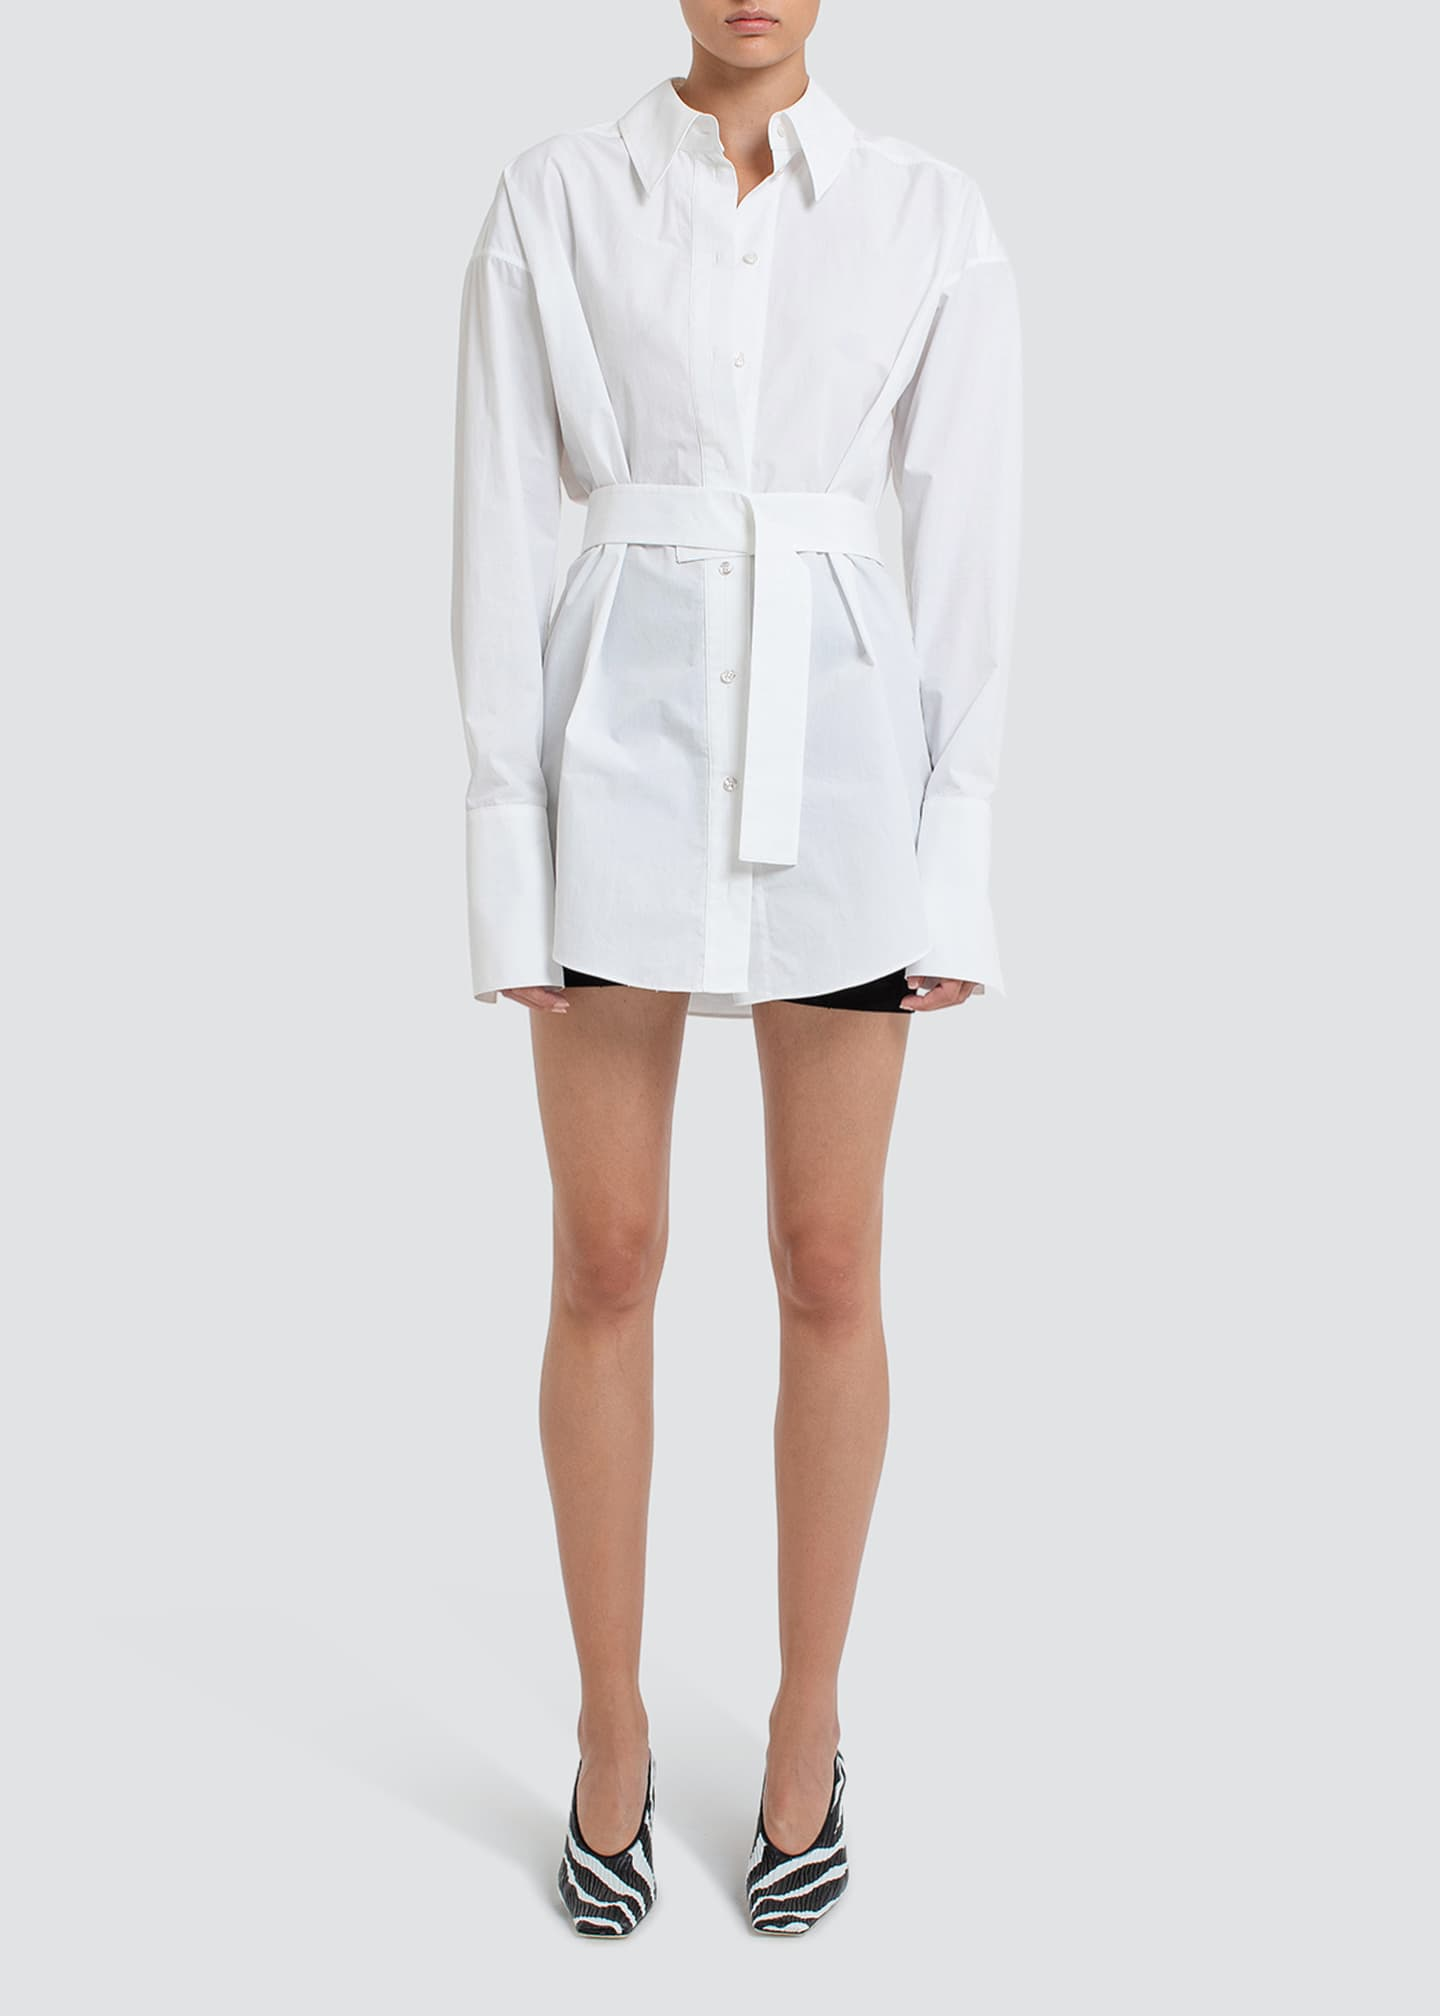 Image 1 of 3: Patras Belted Menswear Shirt Dress